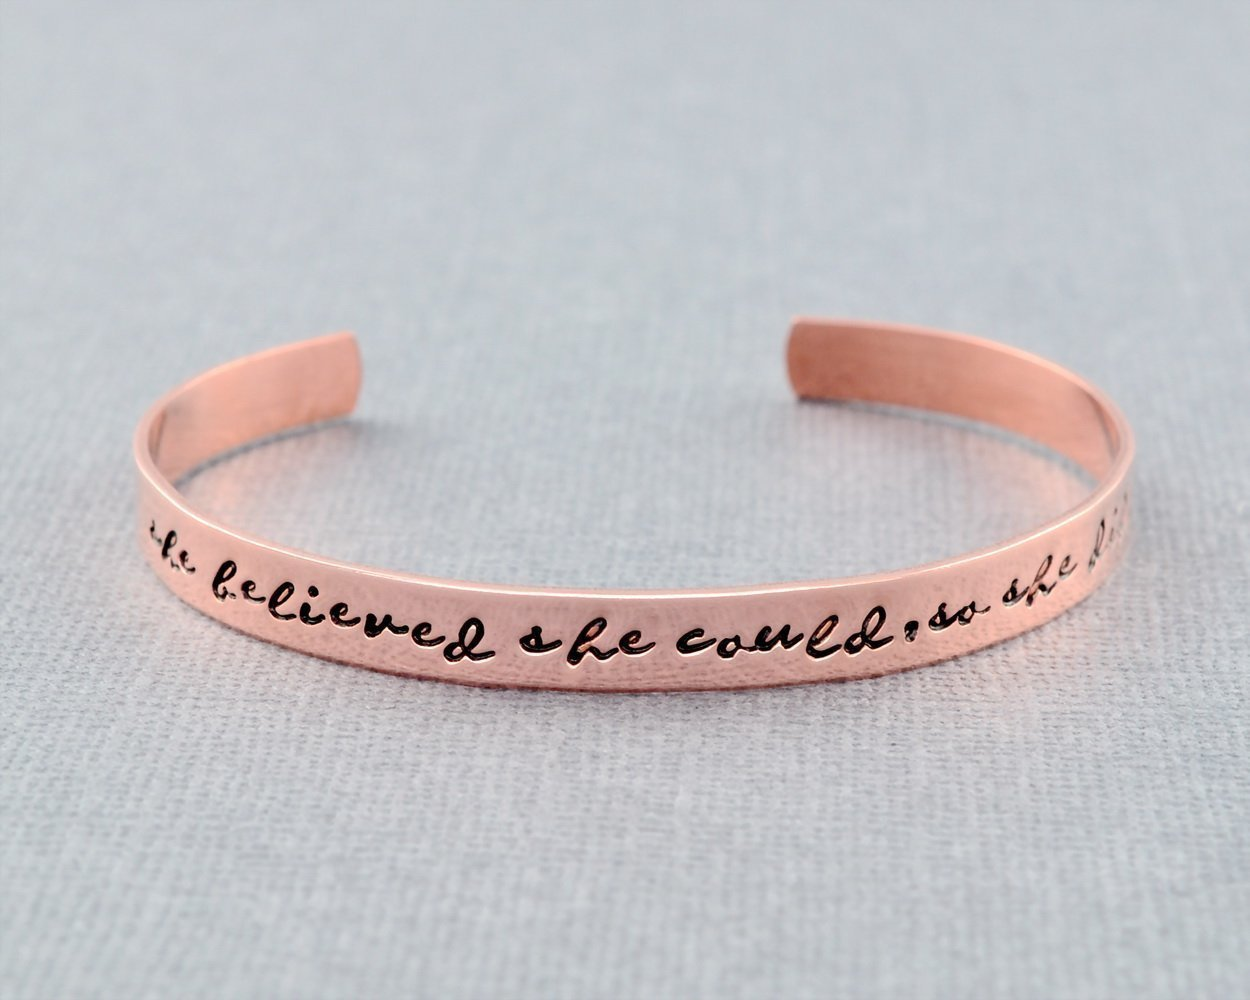 Grad Gift for Her Friends Sorority Sisters Group Graduation Gift Motivational Inspirational Quote Graduate Cuff Hand Stamped Copper or Brass Cuff Bracelet She Believed She Could So She Did